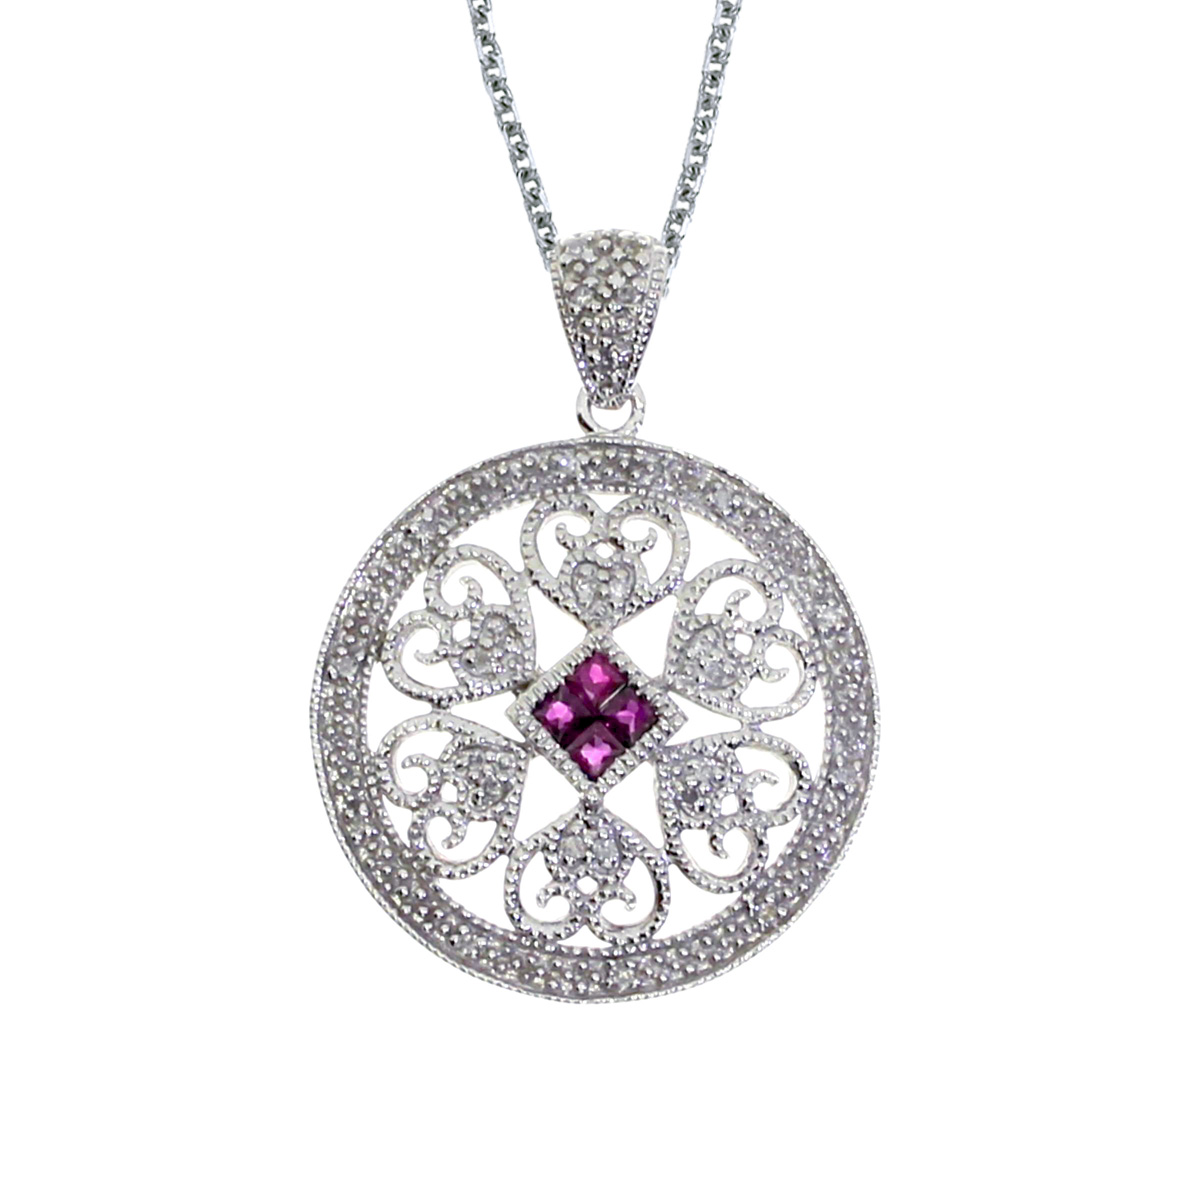 A beautiful round filigree pendant with four rubies and .08 total ct diamonds.